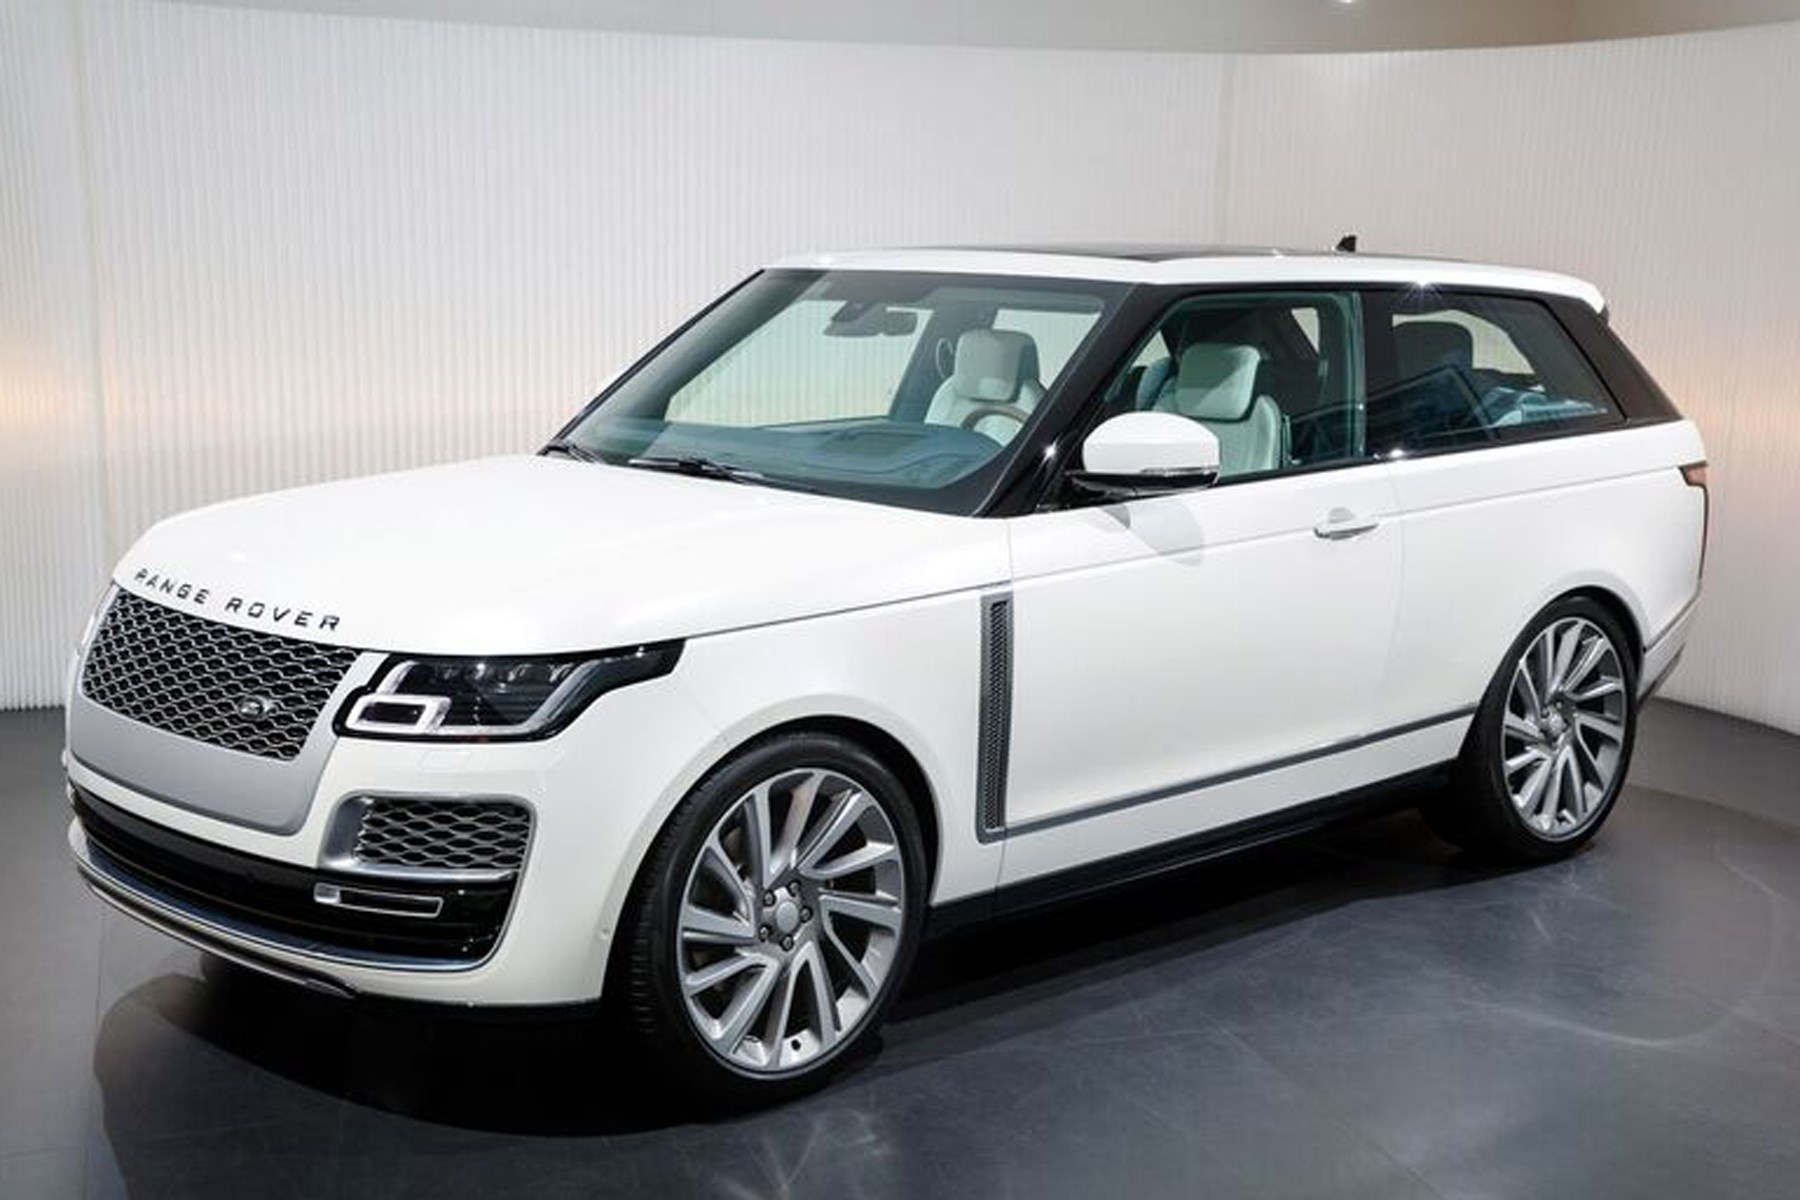 New range rover sv coupe news pictures specs prices for Mercedes benz range rover price